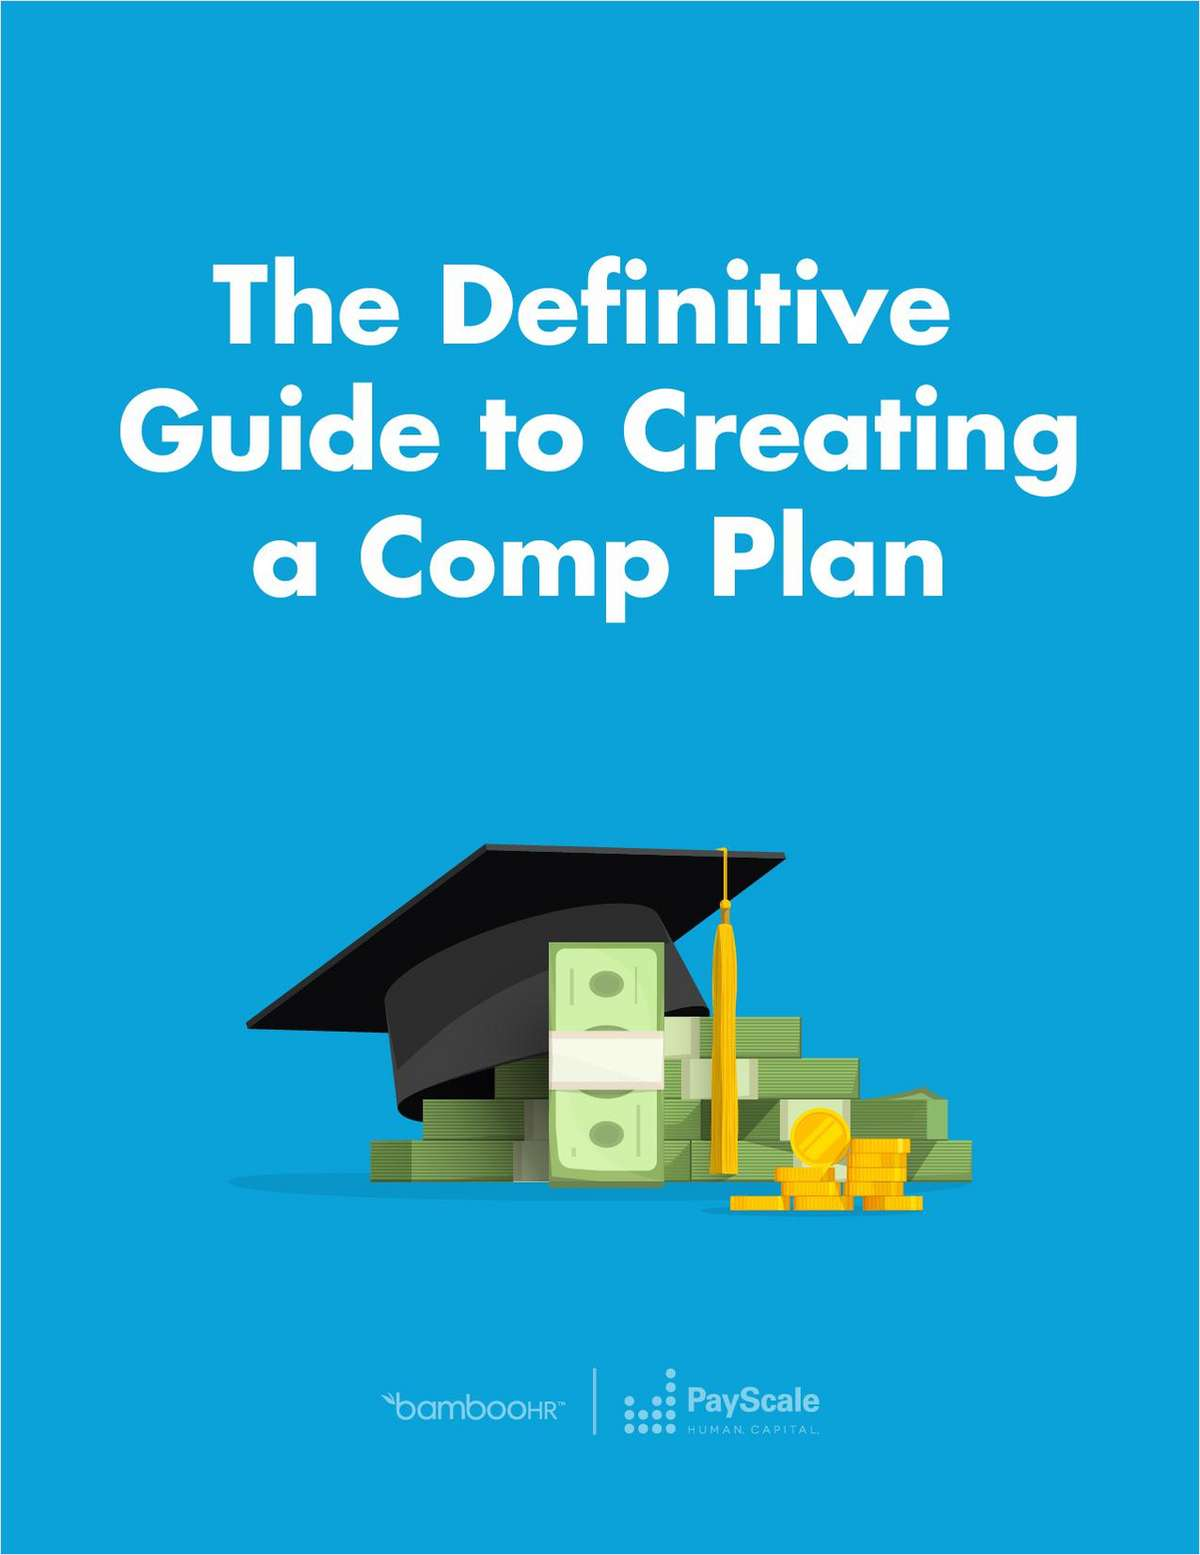 The Definitive Guide to Creating a Comp Plan